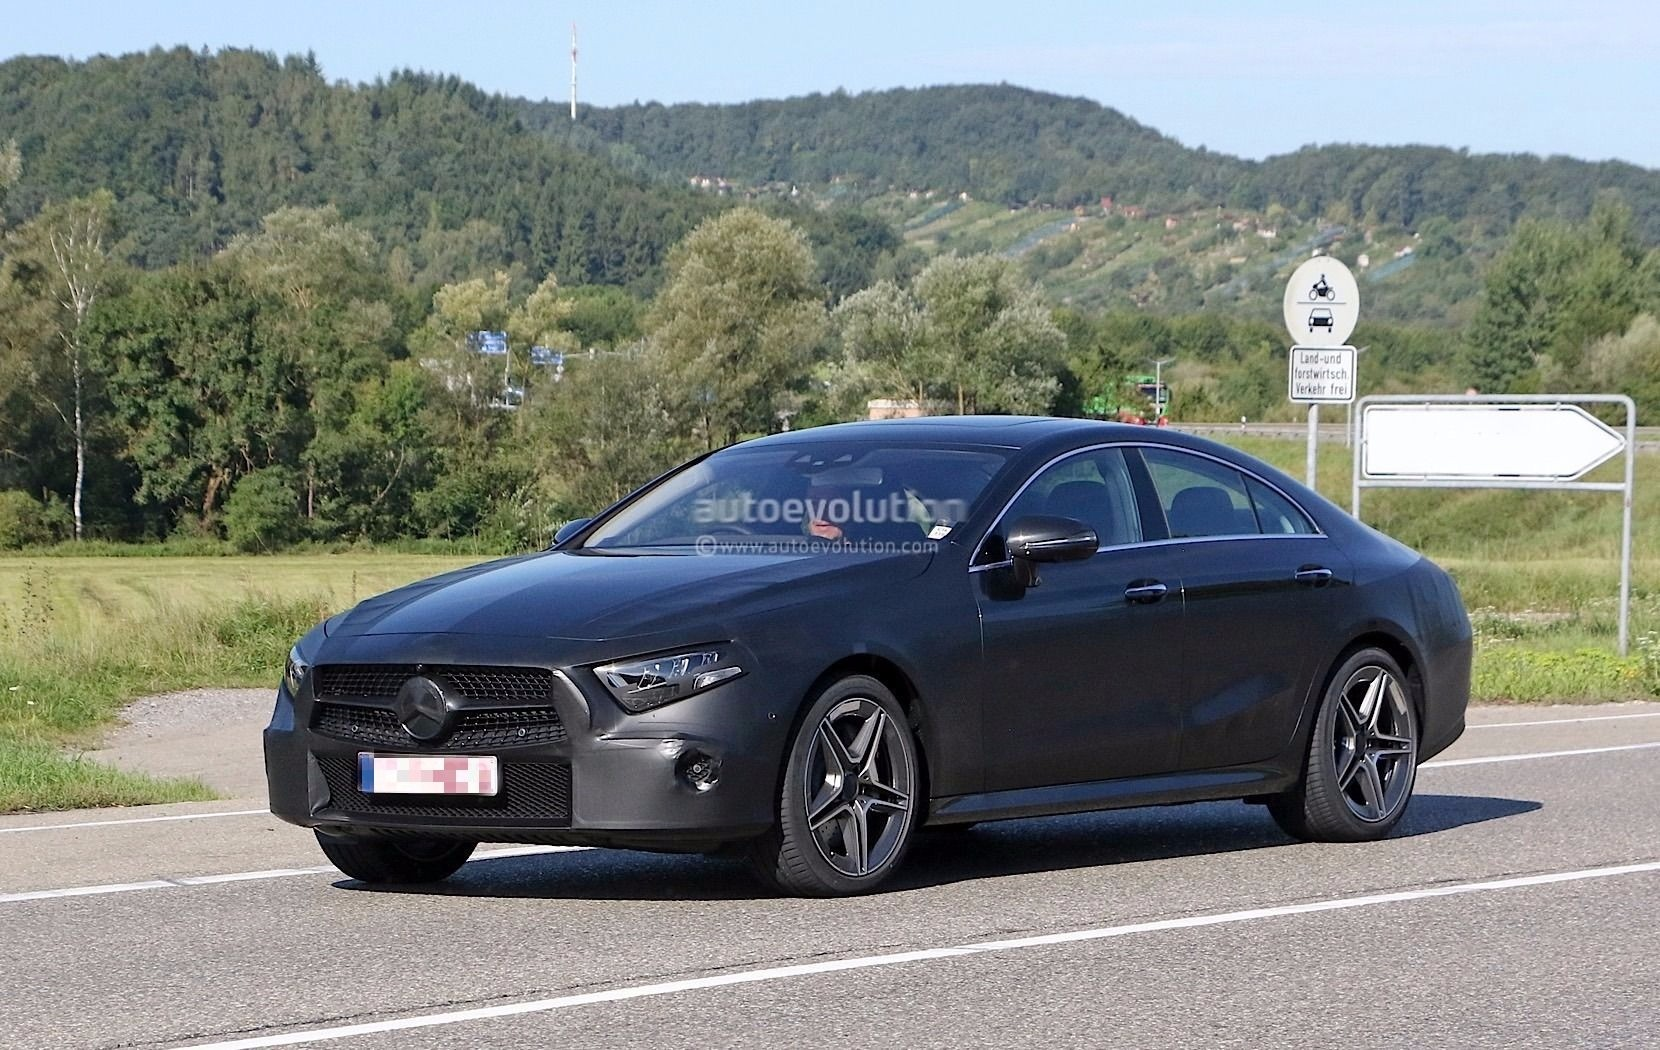 Led Lights For Cars >> Spyshots: 2018 Mercedes-Benz CLS Prototype Looks Production-Ready - autoevolution